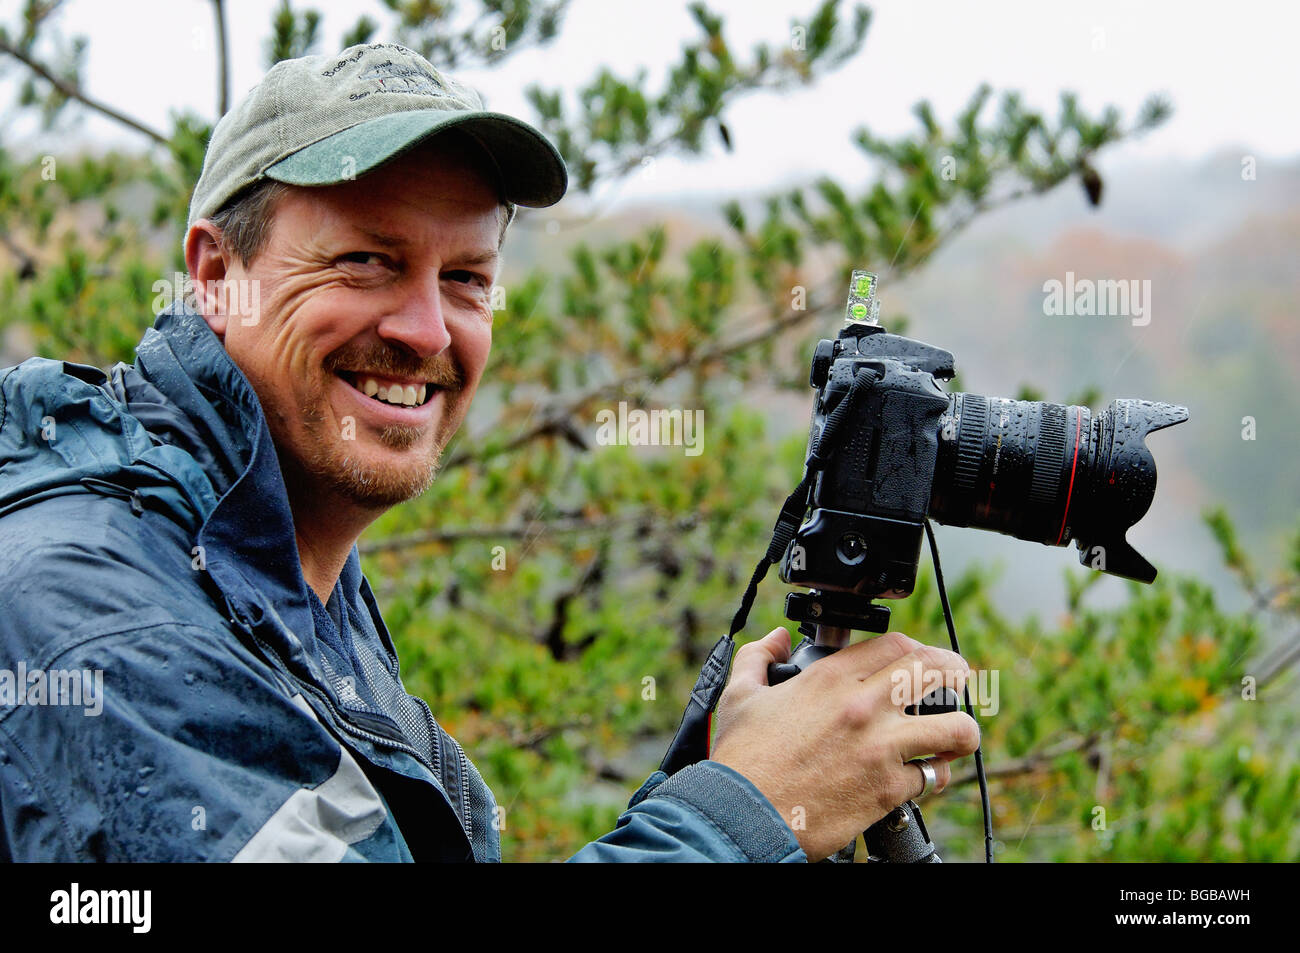 Professional Outdoor Photographer Shooting Photographs in the Rain - Stock Image